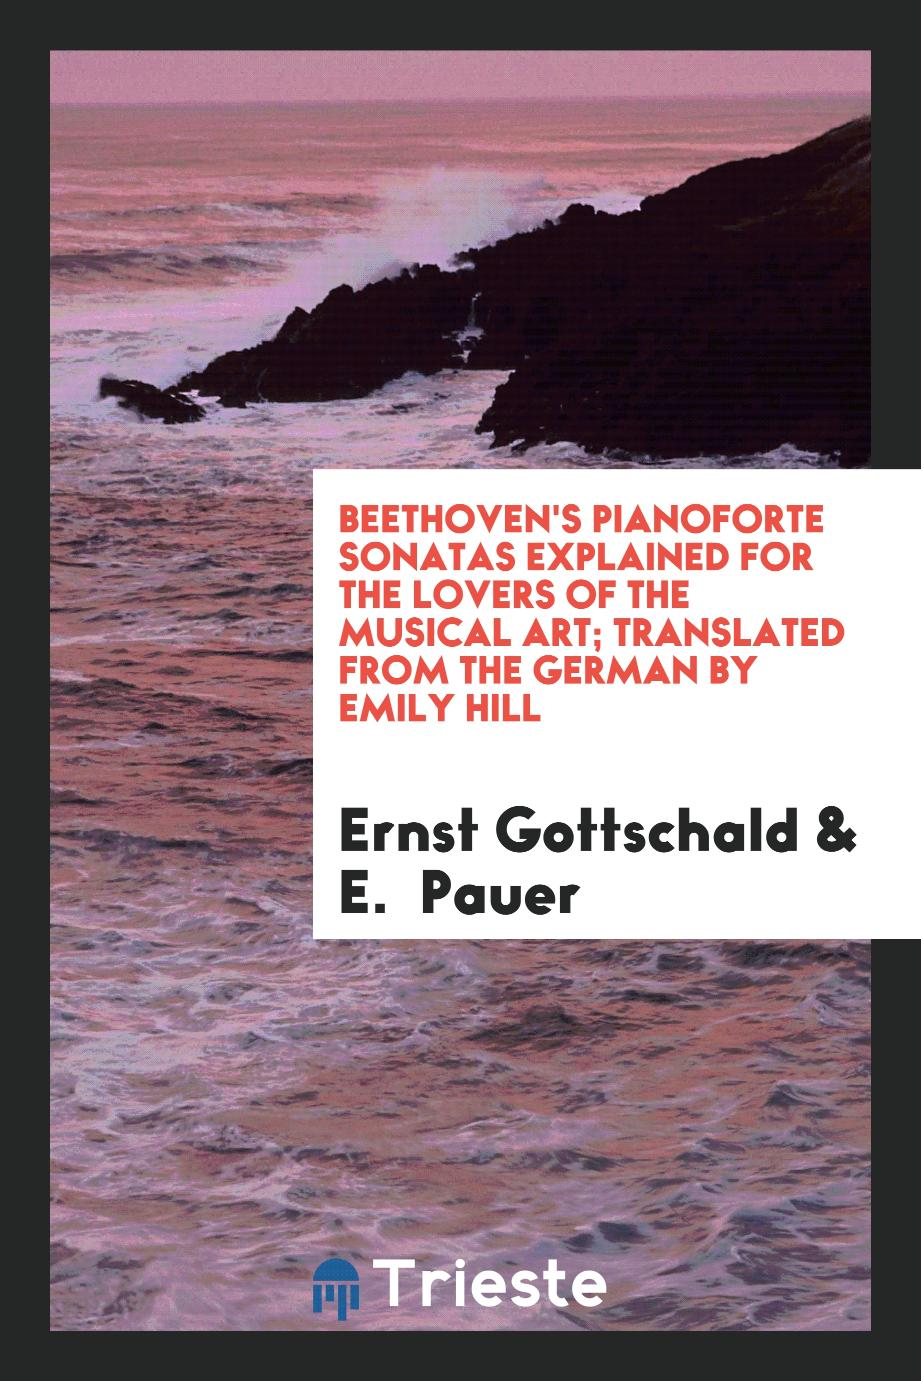 Beethoven's pianoforte sonatas explained for the lovers of the musical art; translated from the German by Emily Hill